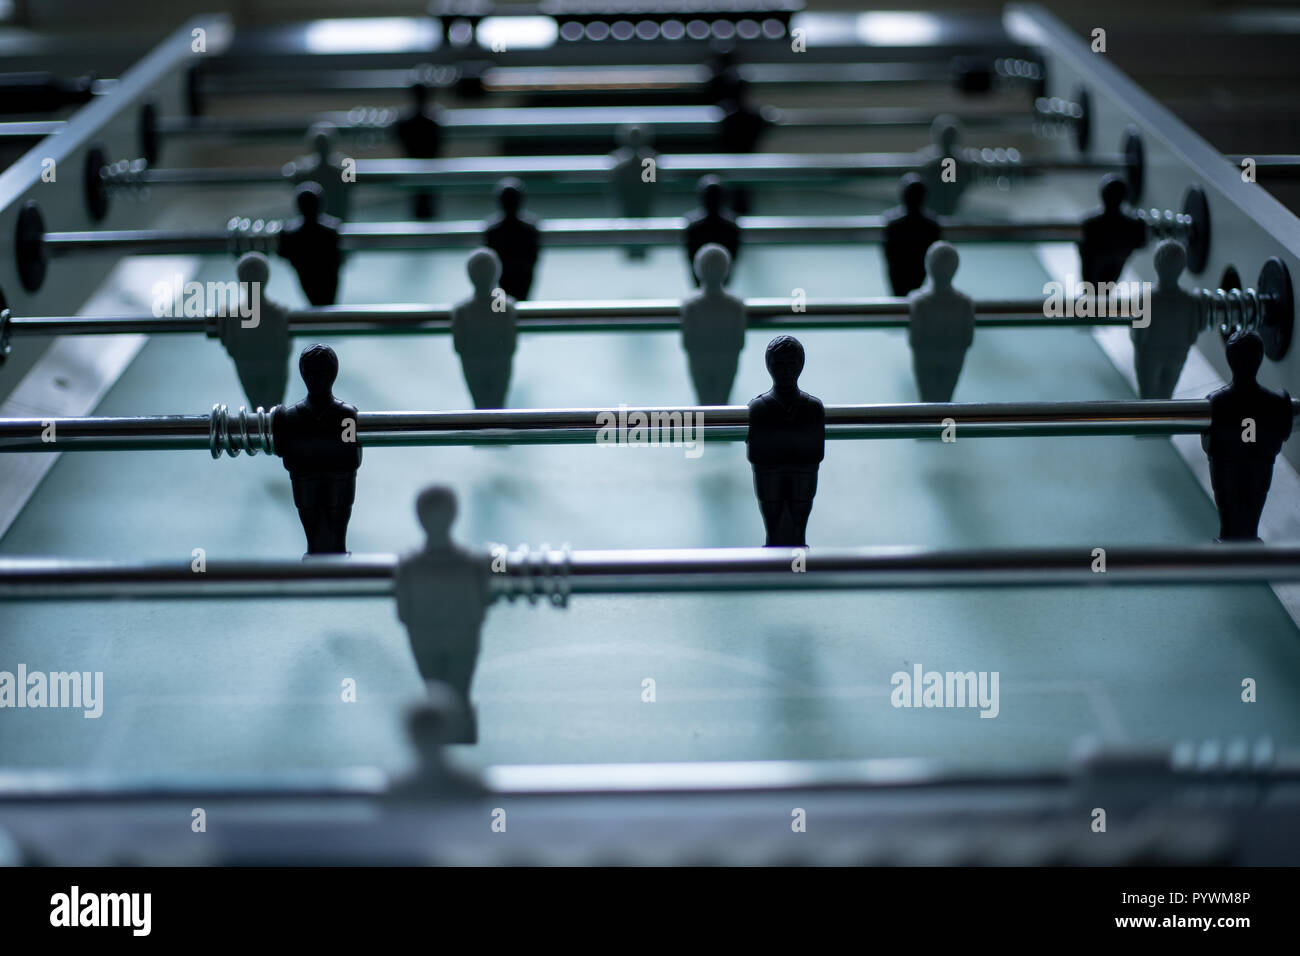 Table football table, football players close up black and white - Stock Image